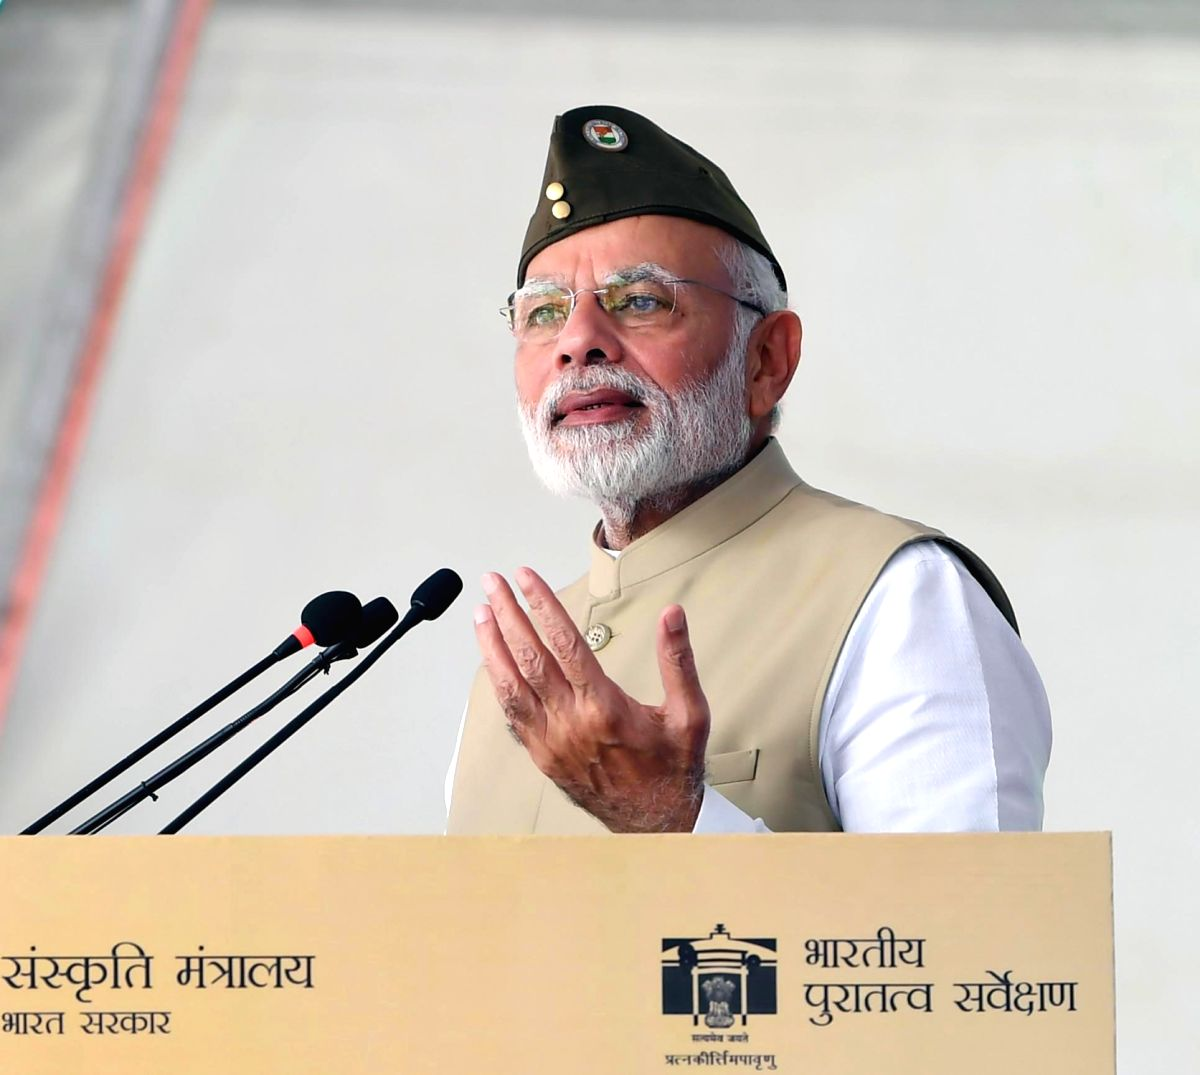 :New Delhi: Prime Minister Narendra Modi hoists the National Flag to commemorate the 75th anniversary of theformation of Azad Hind Government, at Red Fort in New Delhi Delhi on Oct 21, 2018. ...